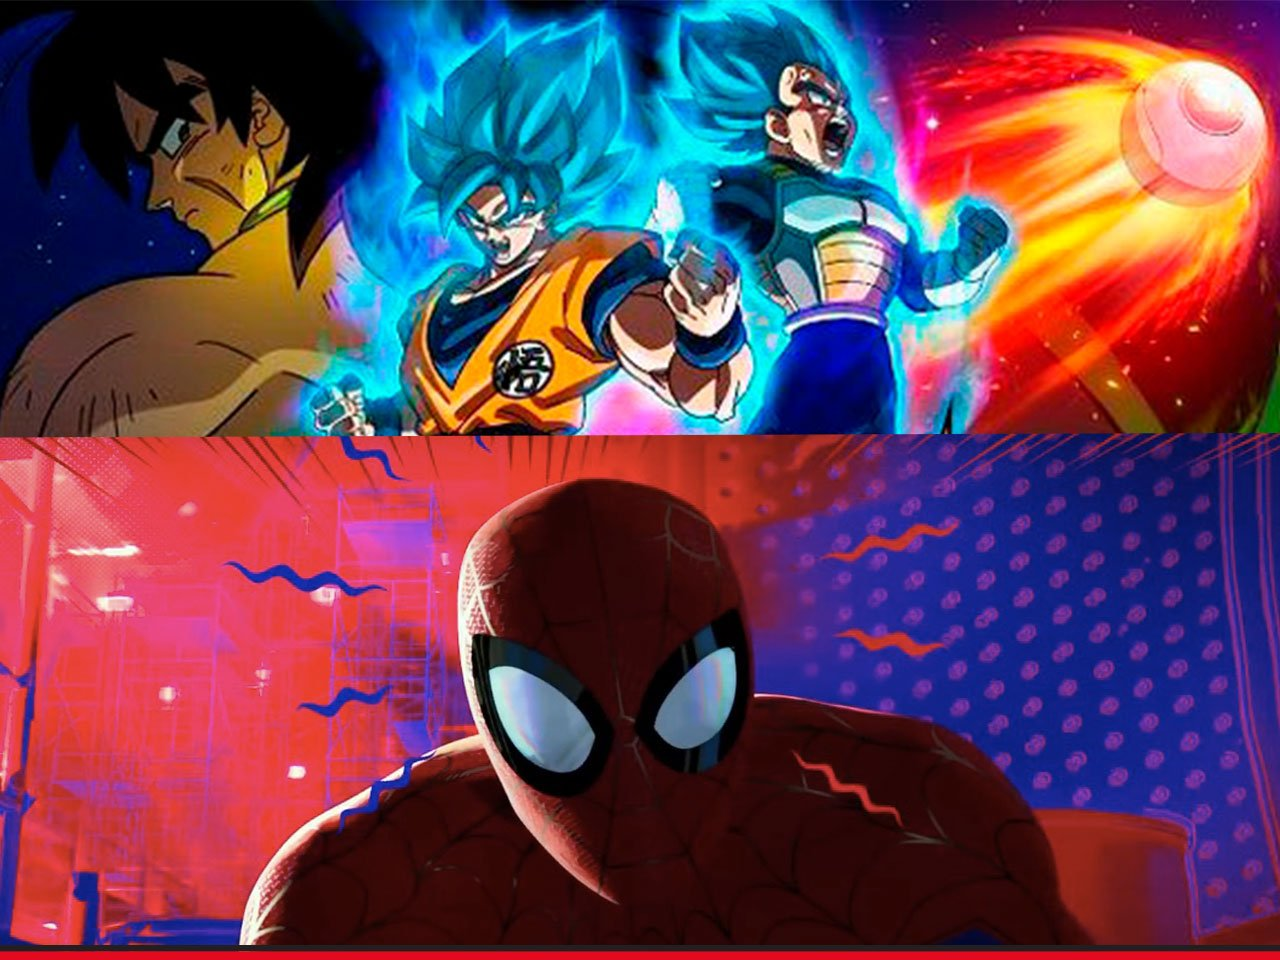 Dragon ball Super Broly Spiderman Into the Spirder verse